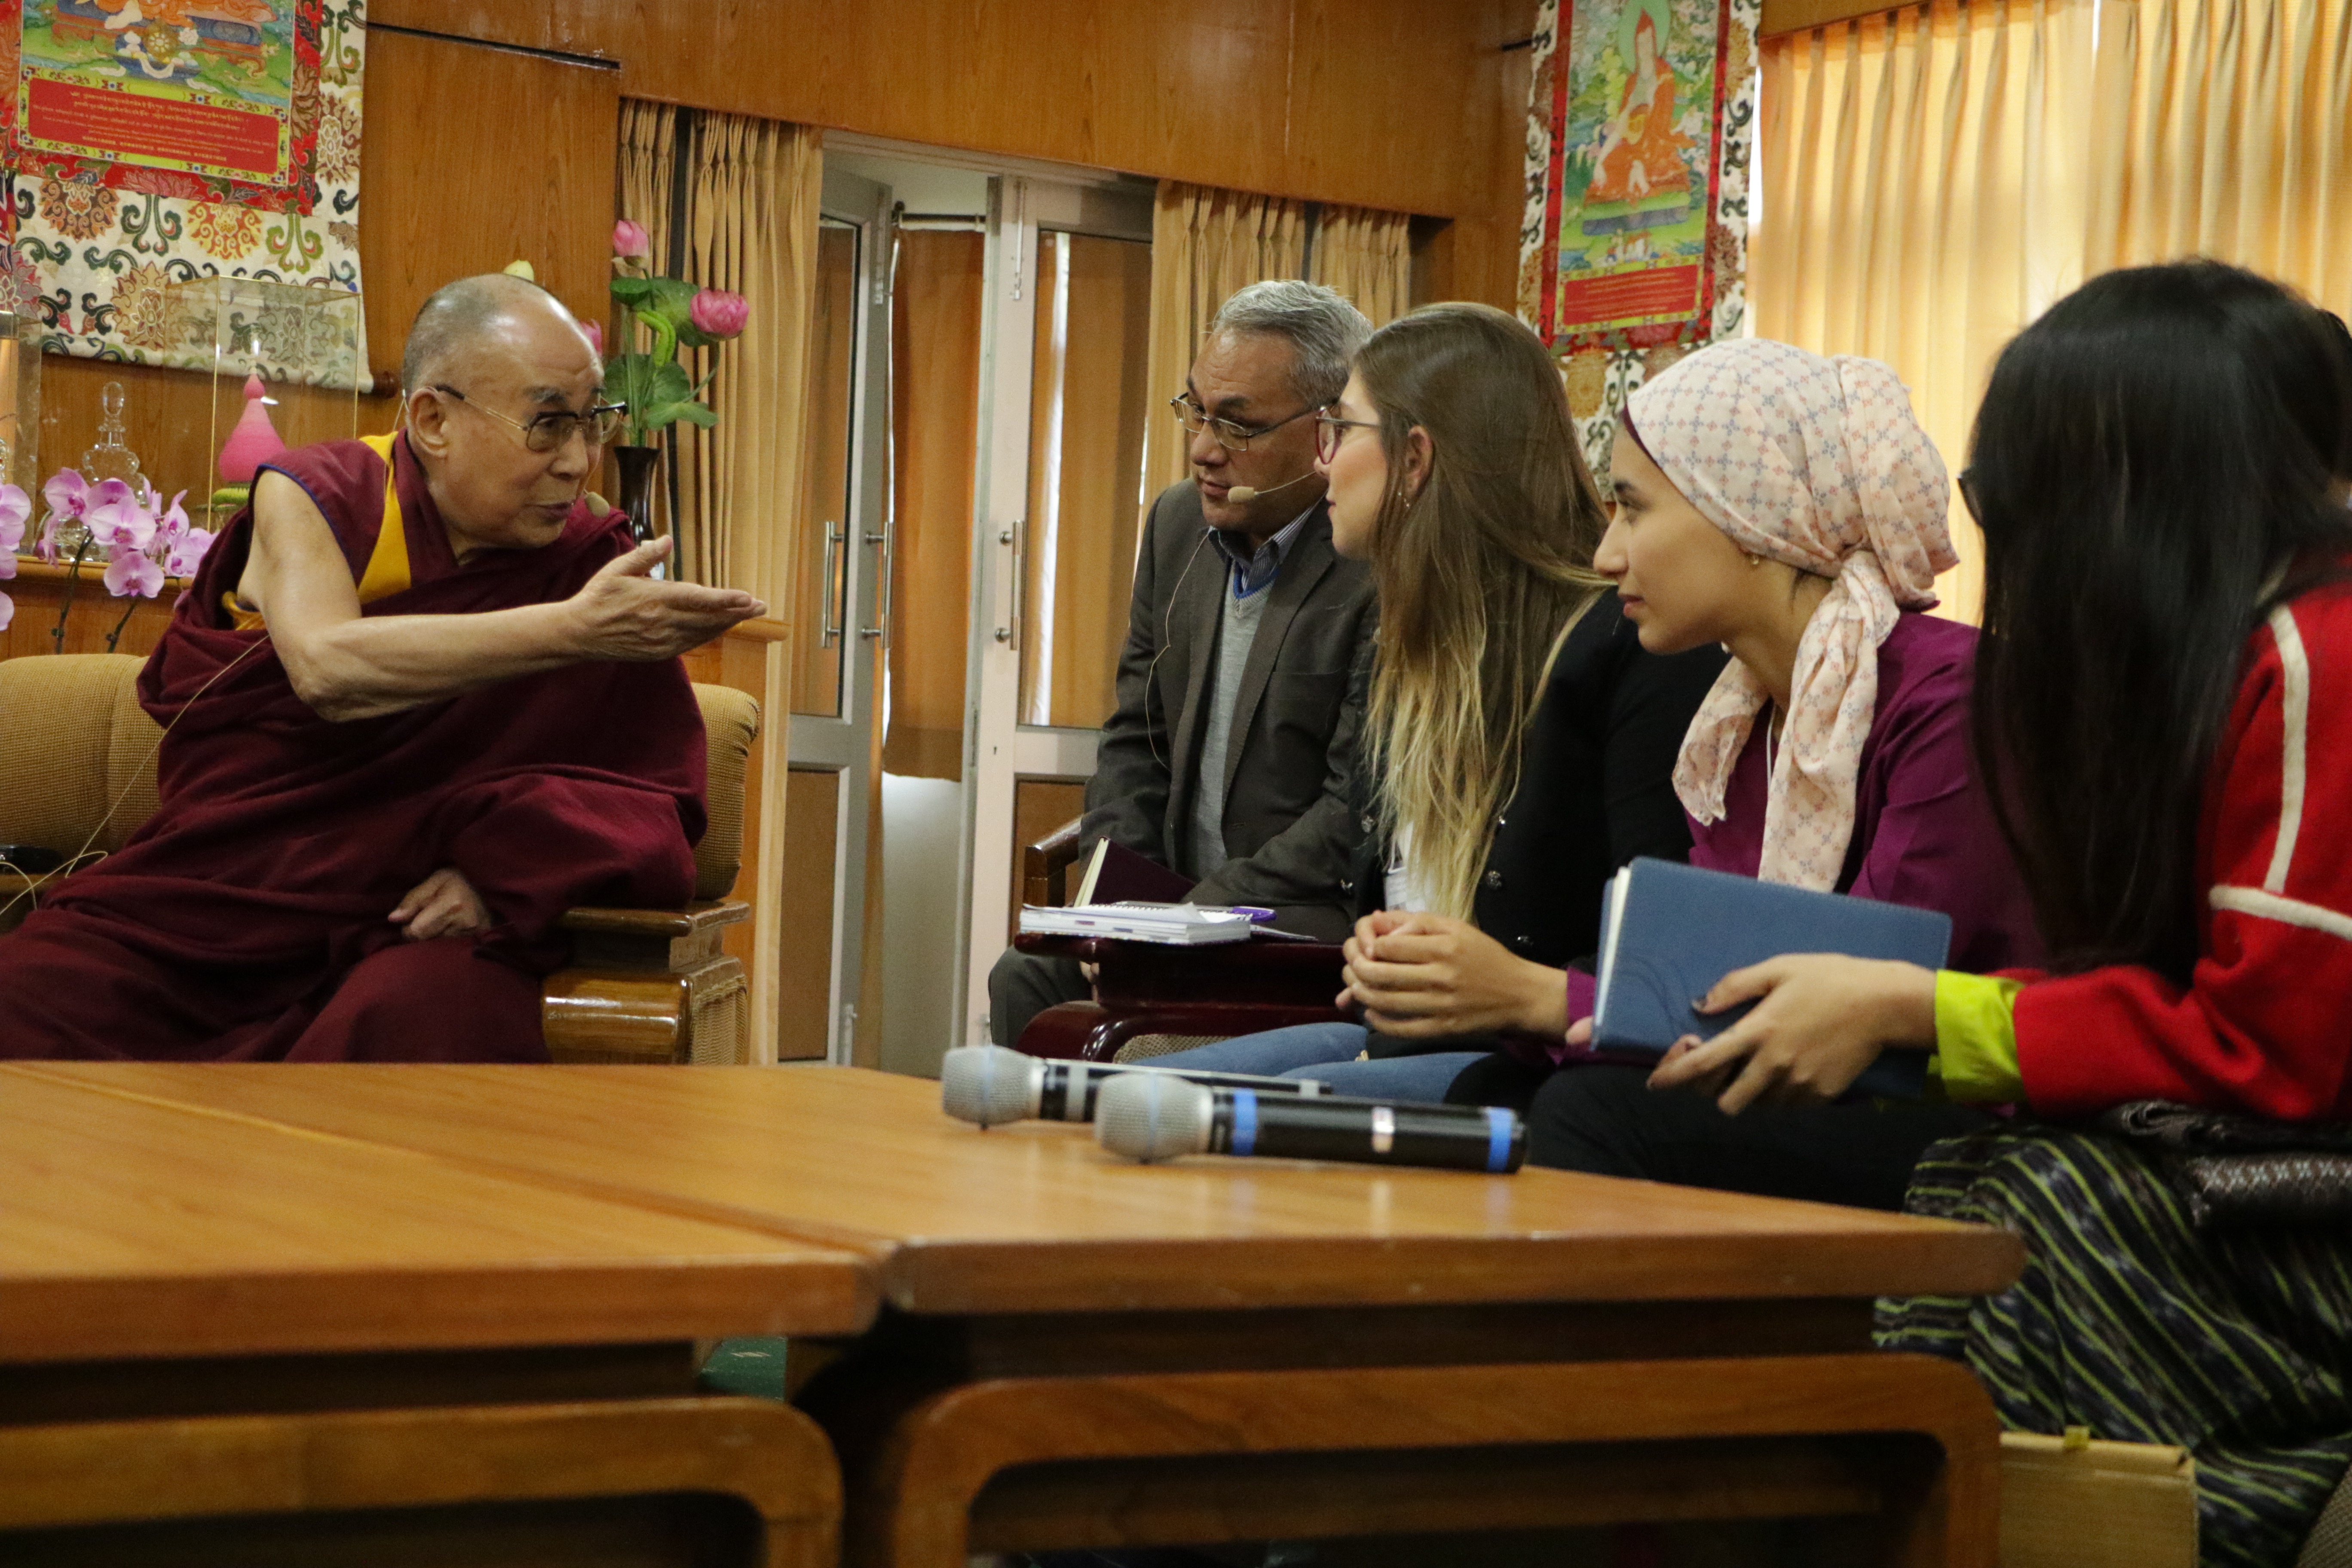 Caption: The Dalai Lama meets with USIP Youth Leaders, Credit: Rohini Das/USIP